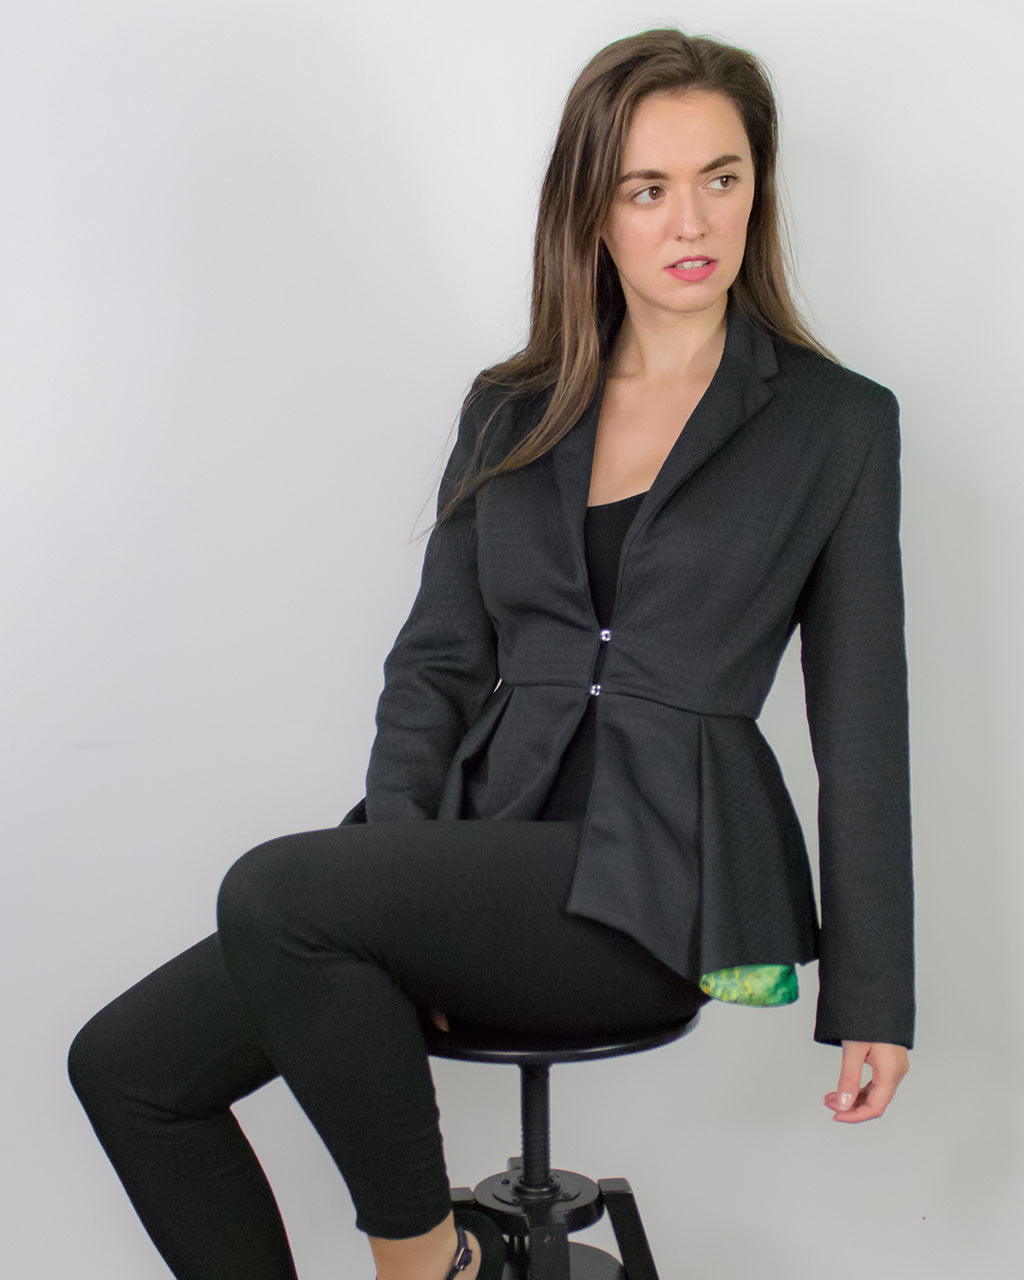 Designer sustainable black fitted peplum blazer ladies tailored jacket by ADKN ethically made in UK from recycled PET bottles